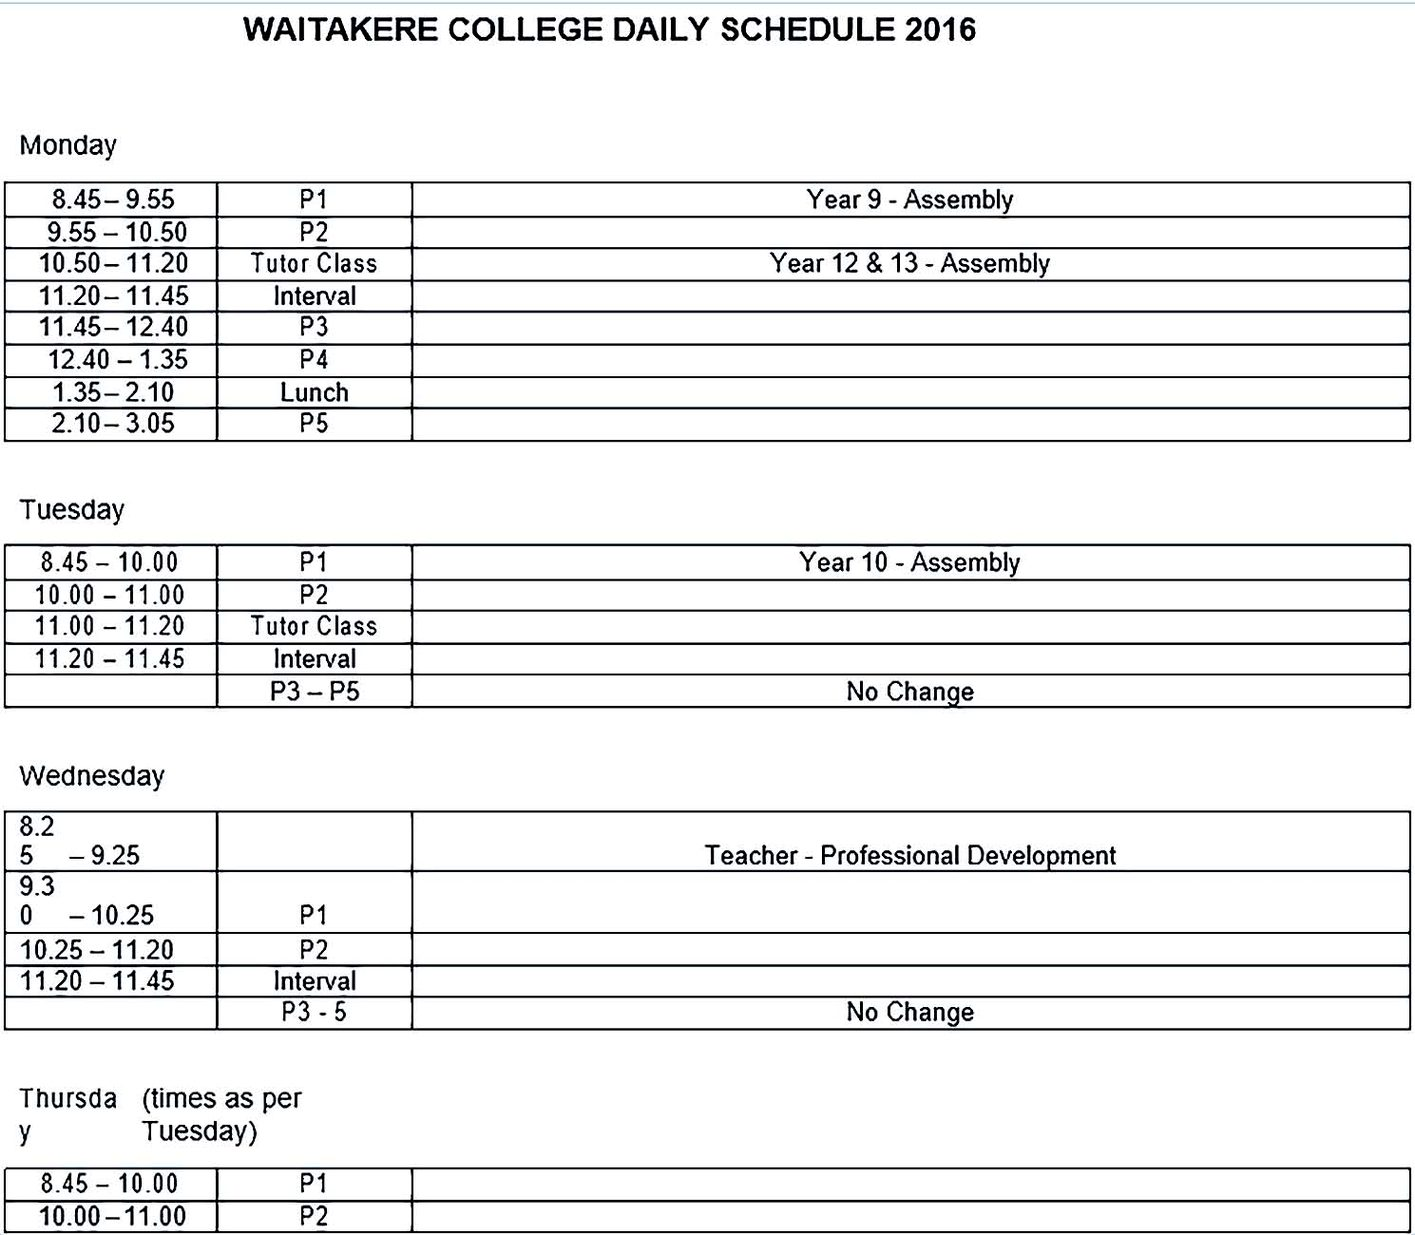 Waitakere College Daily Schedule